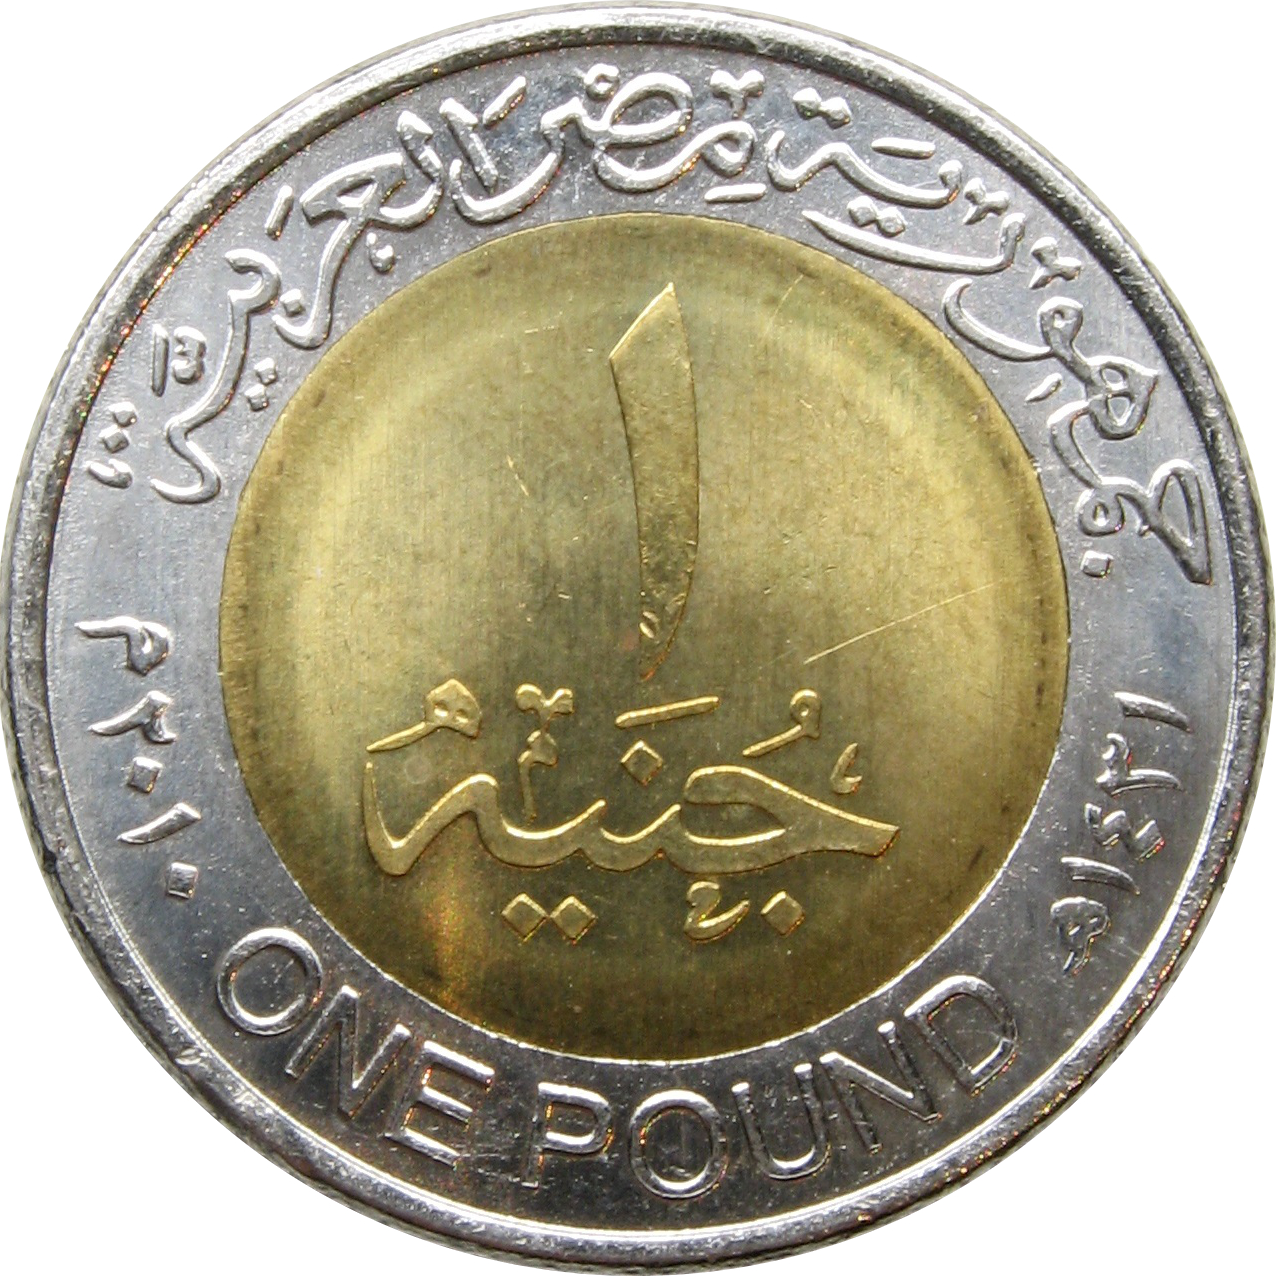 1 Pound Magnetique Egypte Numista